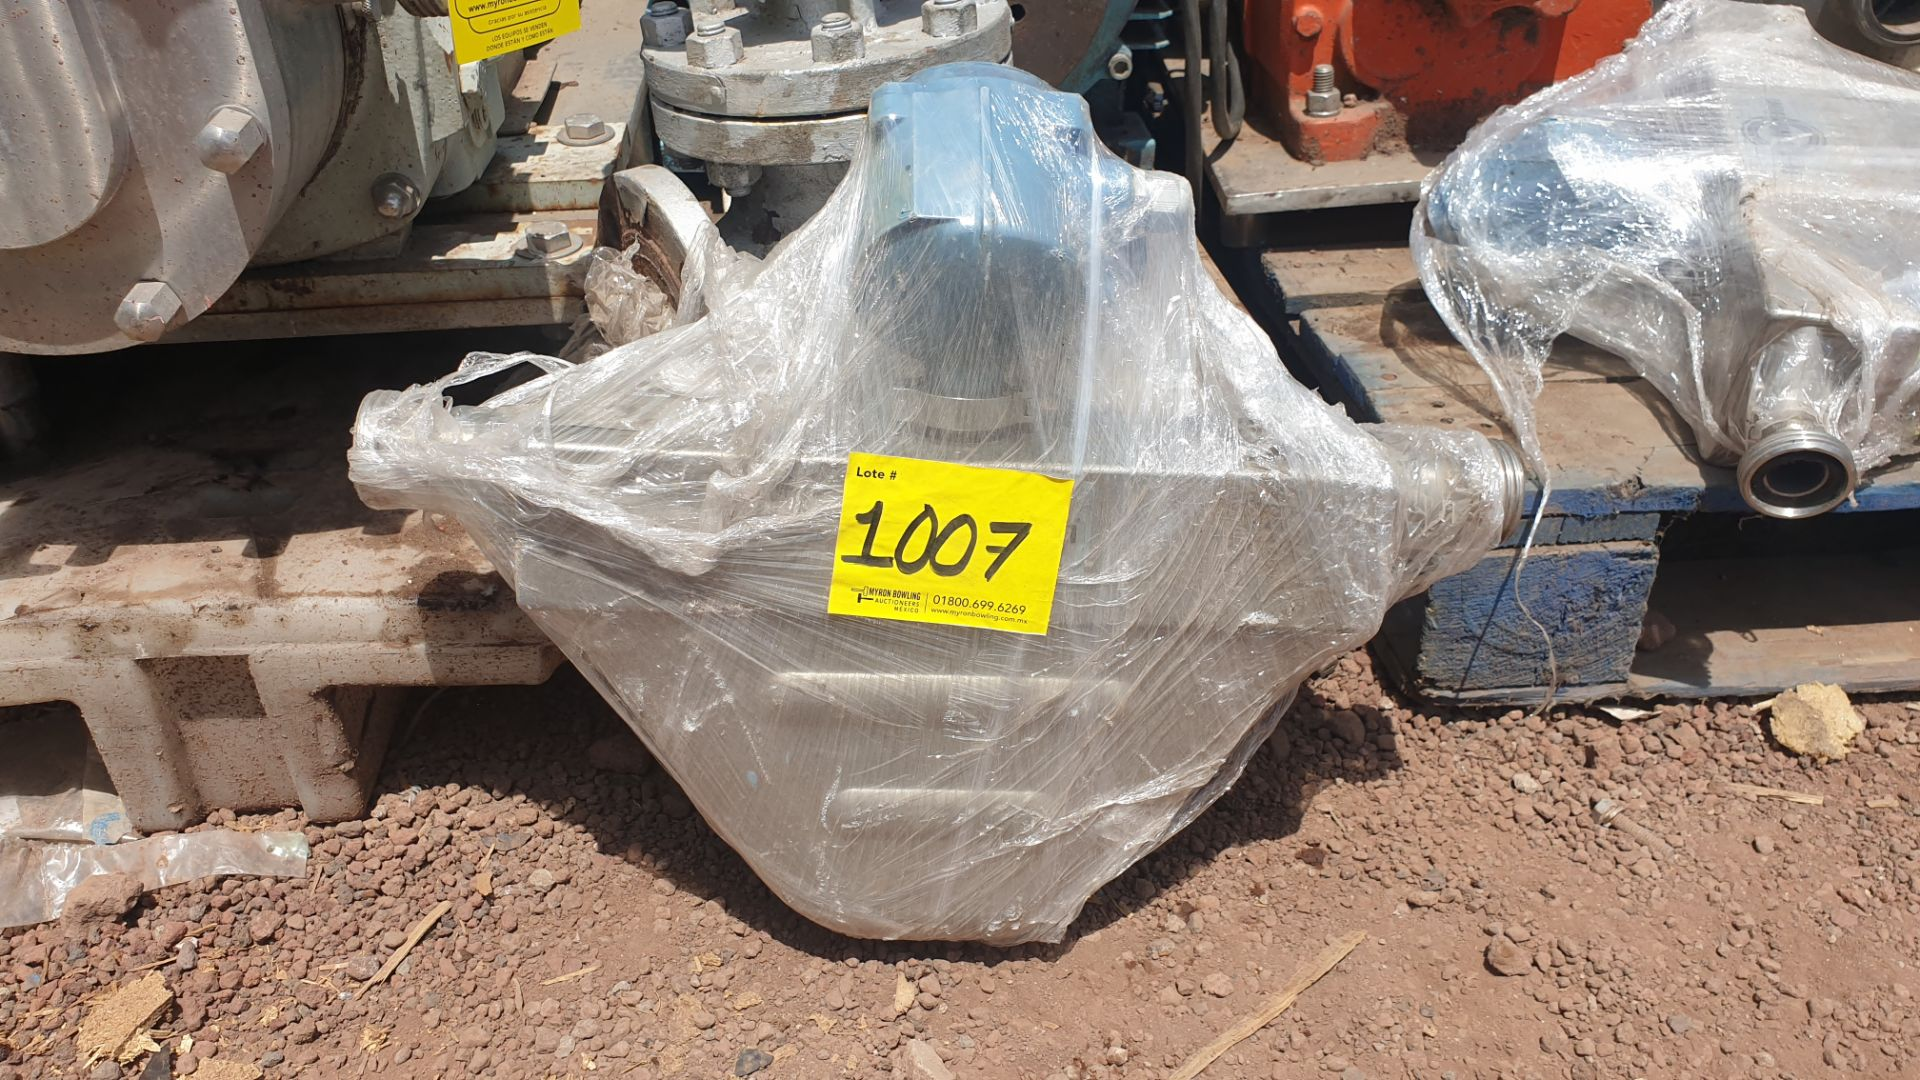 Micromotion Flow meter, model F100S230C2BMSZZZZ NS 14638390 2016 - Image 2 of 9